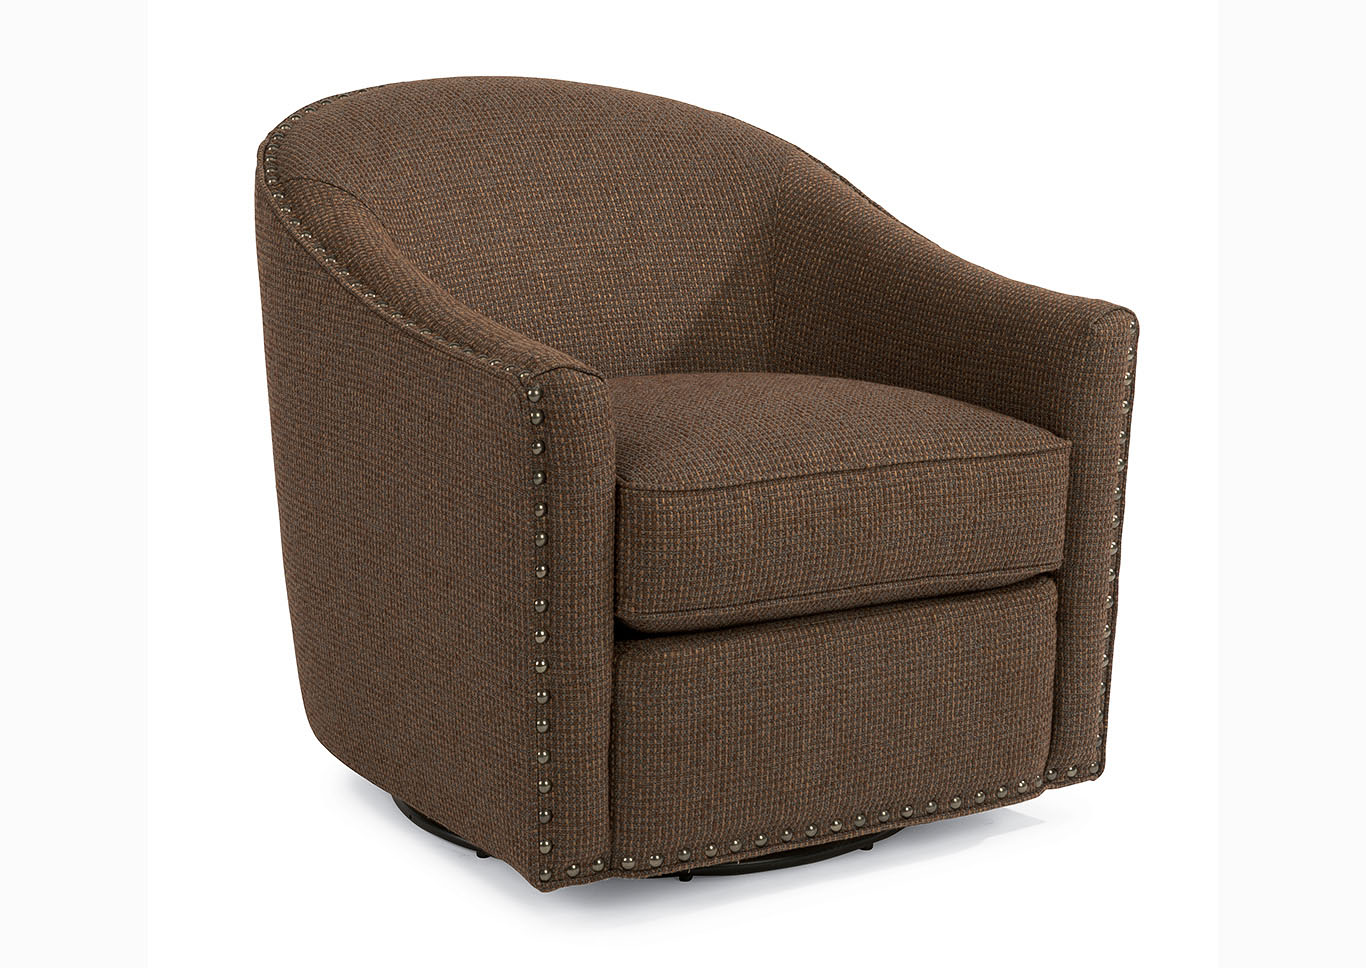 Kedzie Fabric Swivel Chair,Flexsteel